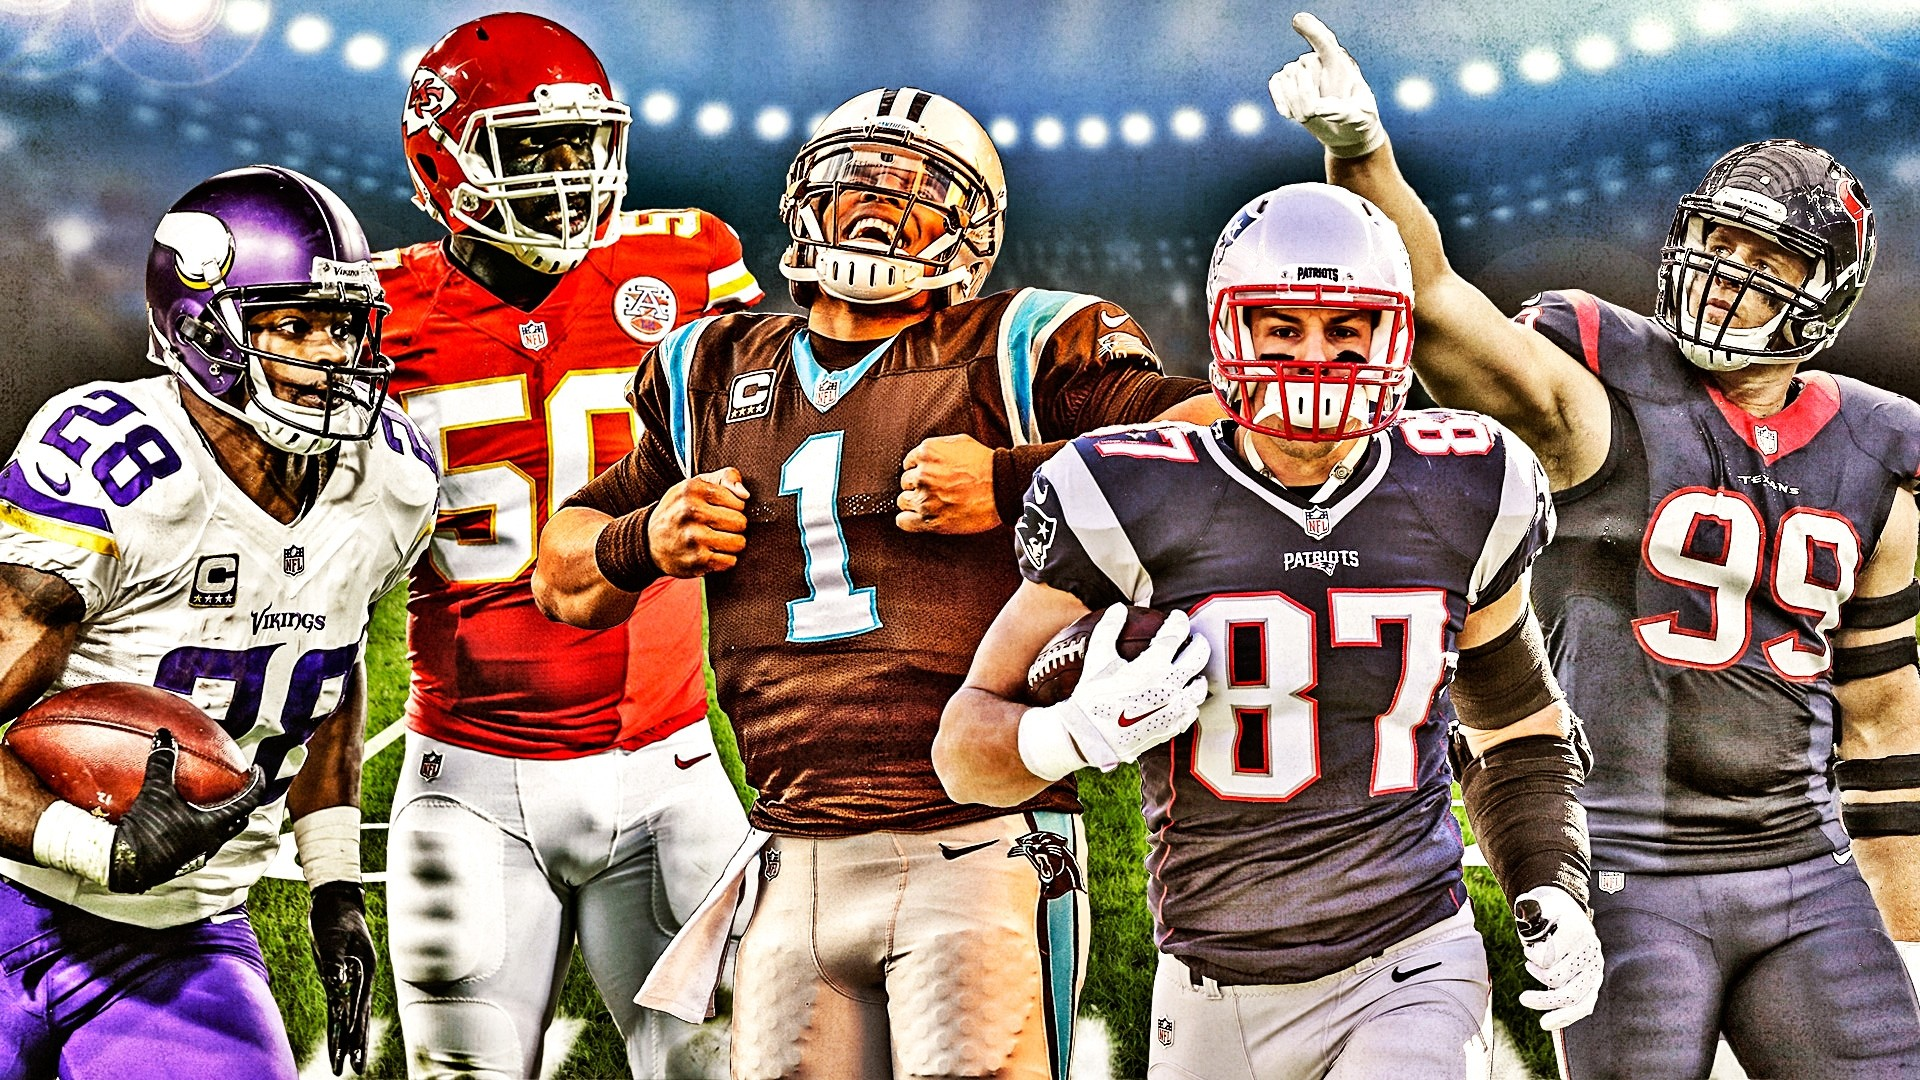 Nfl Cool Nfl Players Wallpapers 66 43 Images